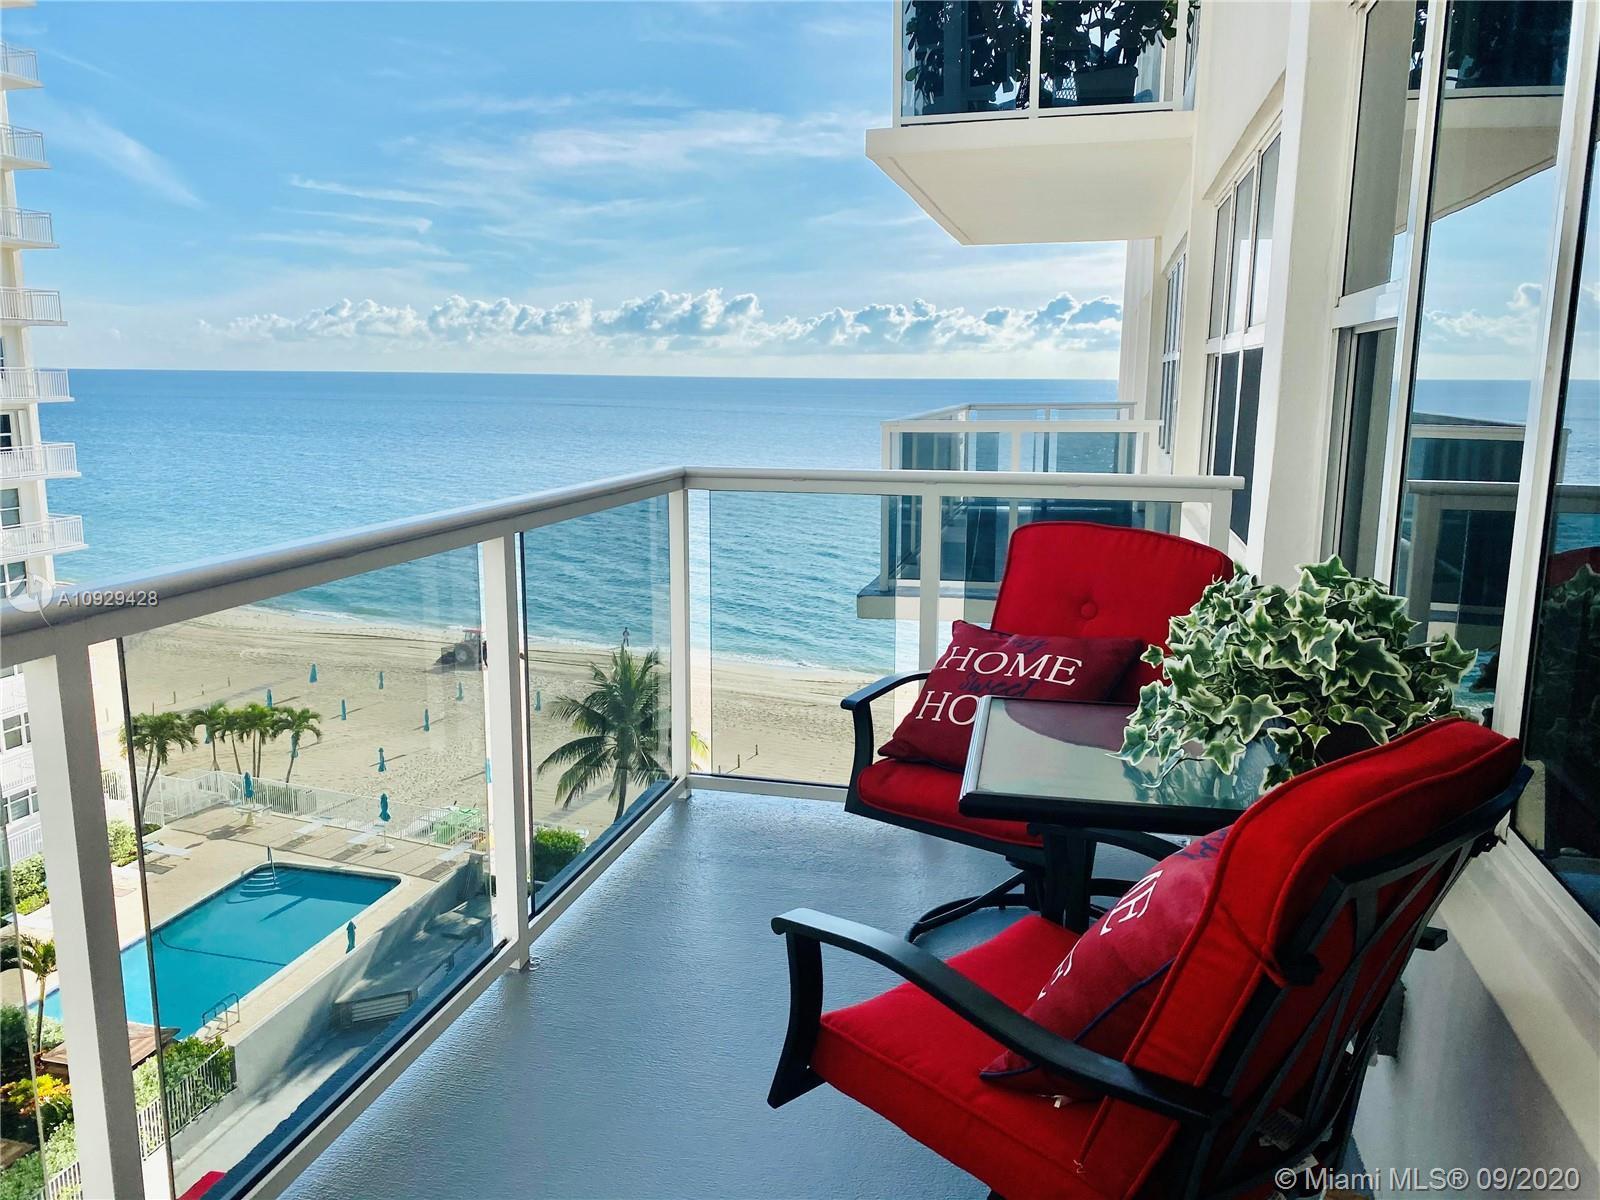 Beautiful direct ocean view in this newly renovated 1 bedroom 1 bath condo in Royal Ambassador. The